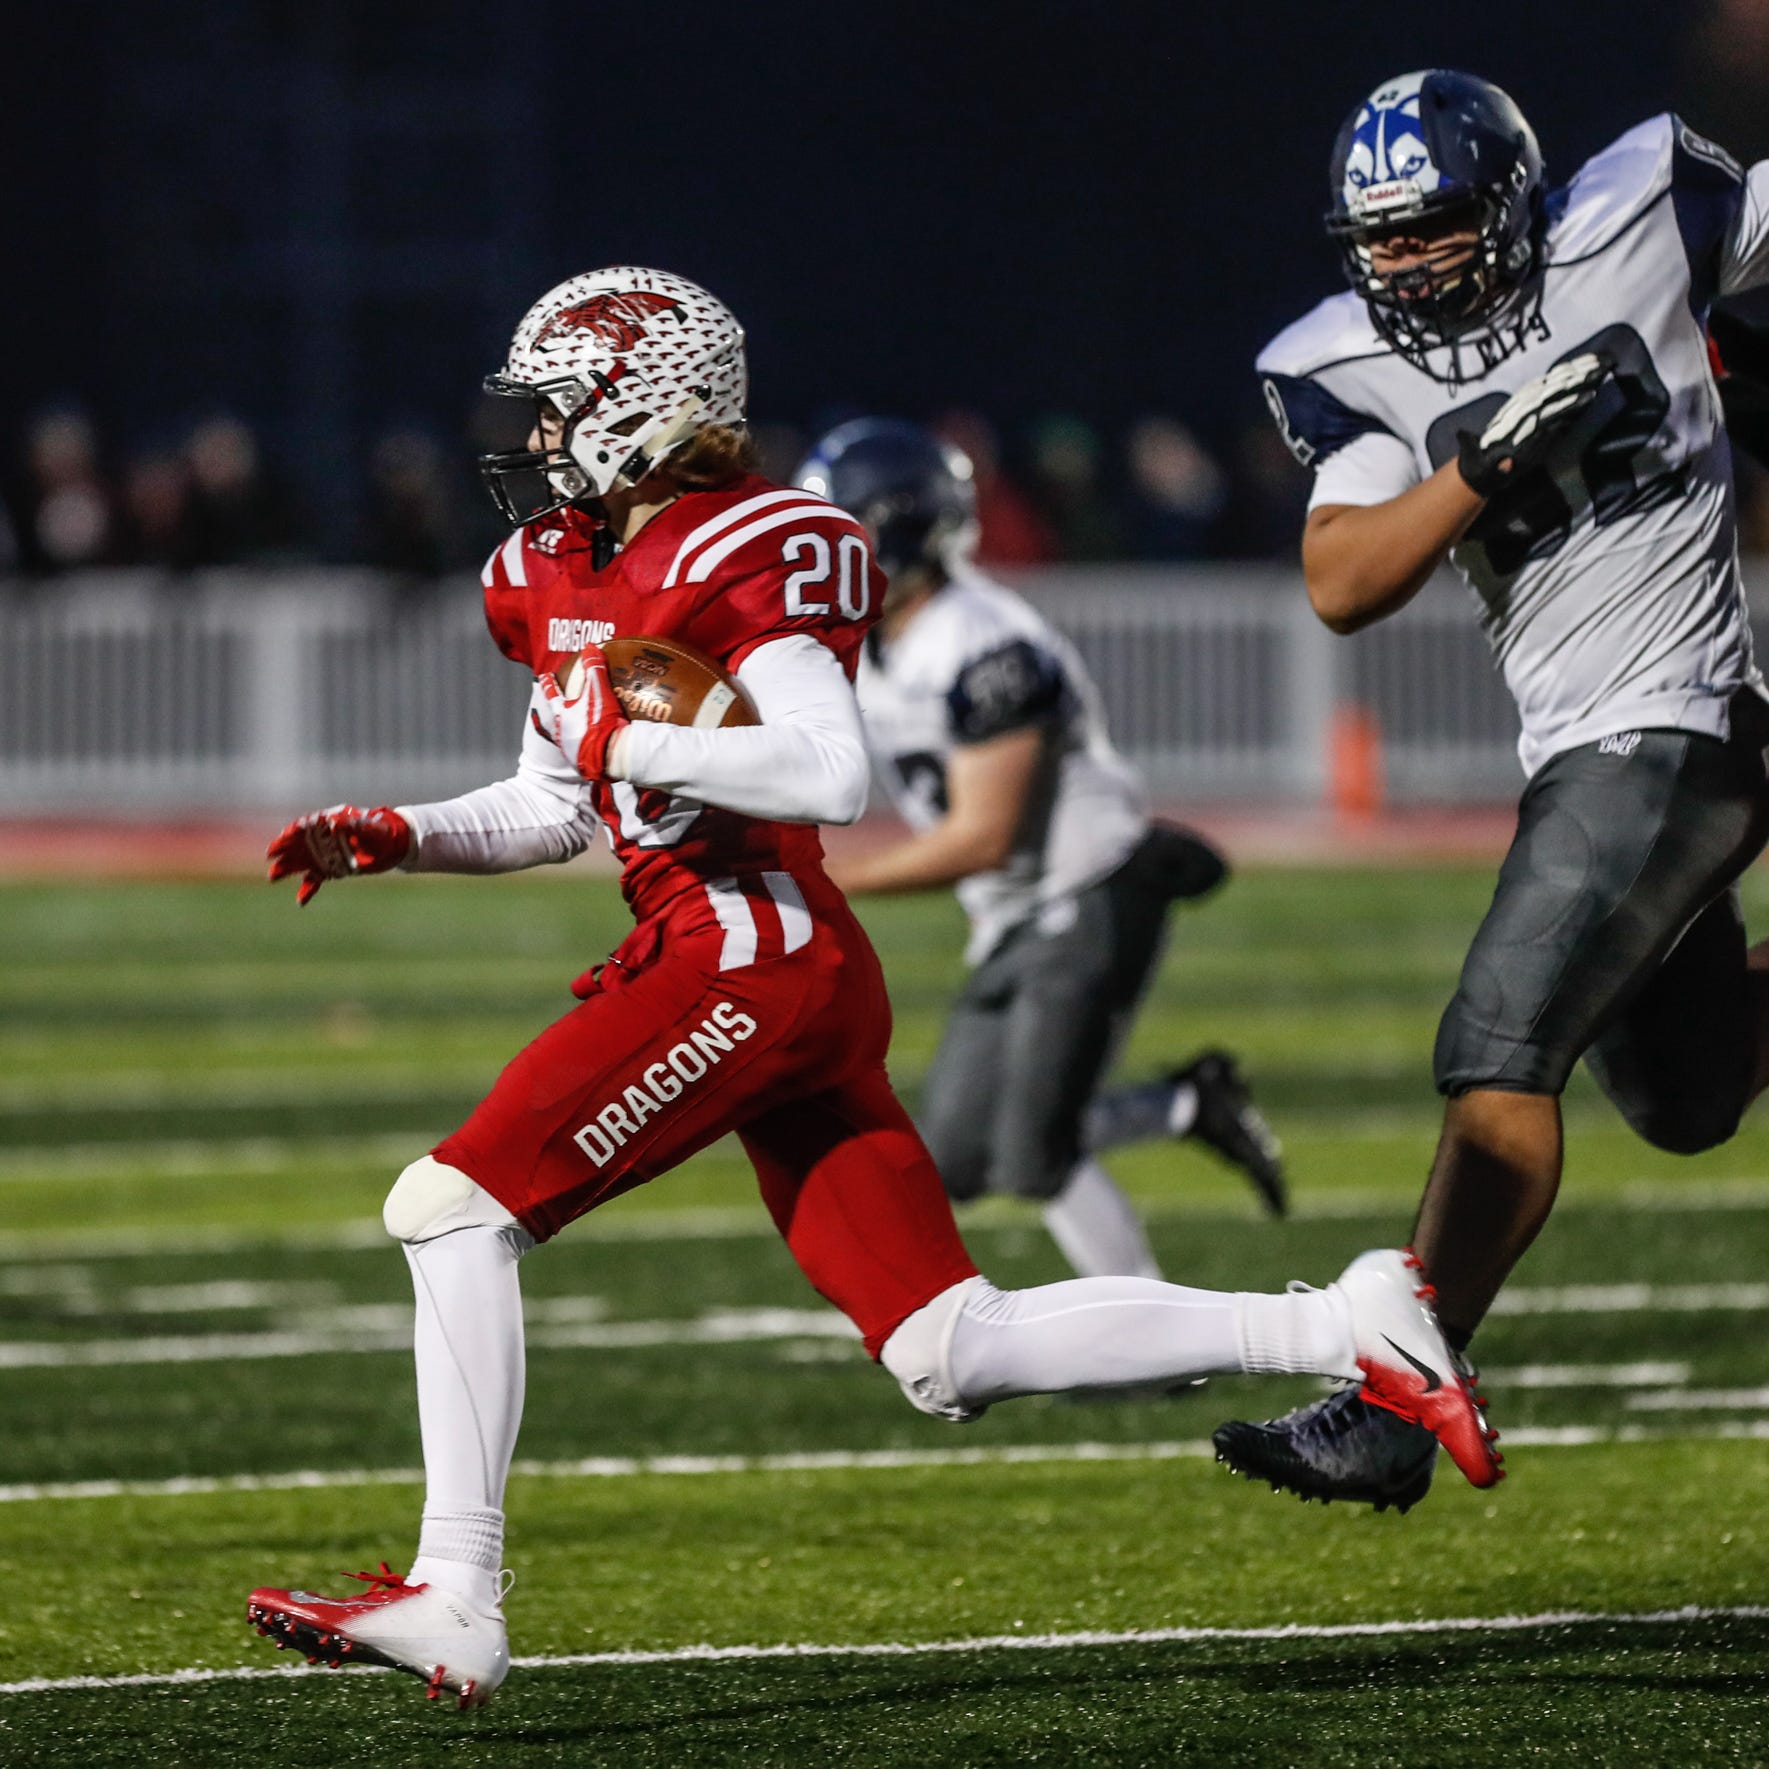 New Palestine High School's Maxen Hook (20), intercepts a pass during the IHSAA Class 5A semistate game between New Palestine High School and Michigan City High School at New Pal. on Saturday, Nov. 17, 2018.